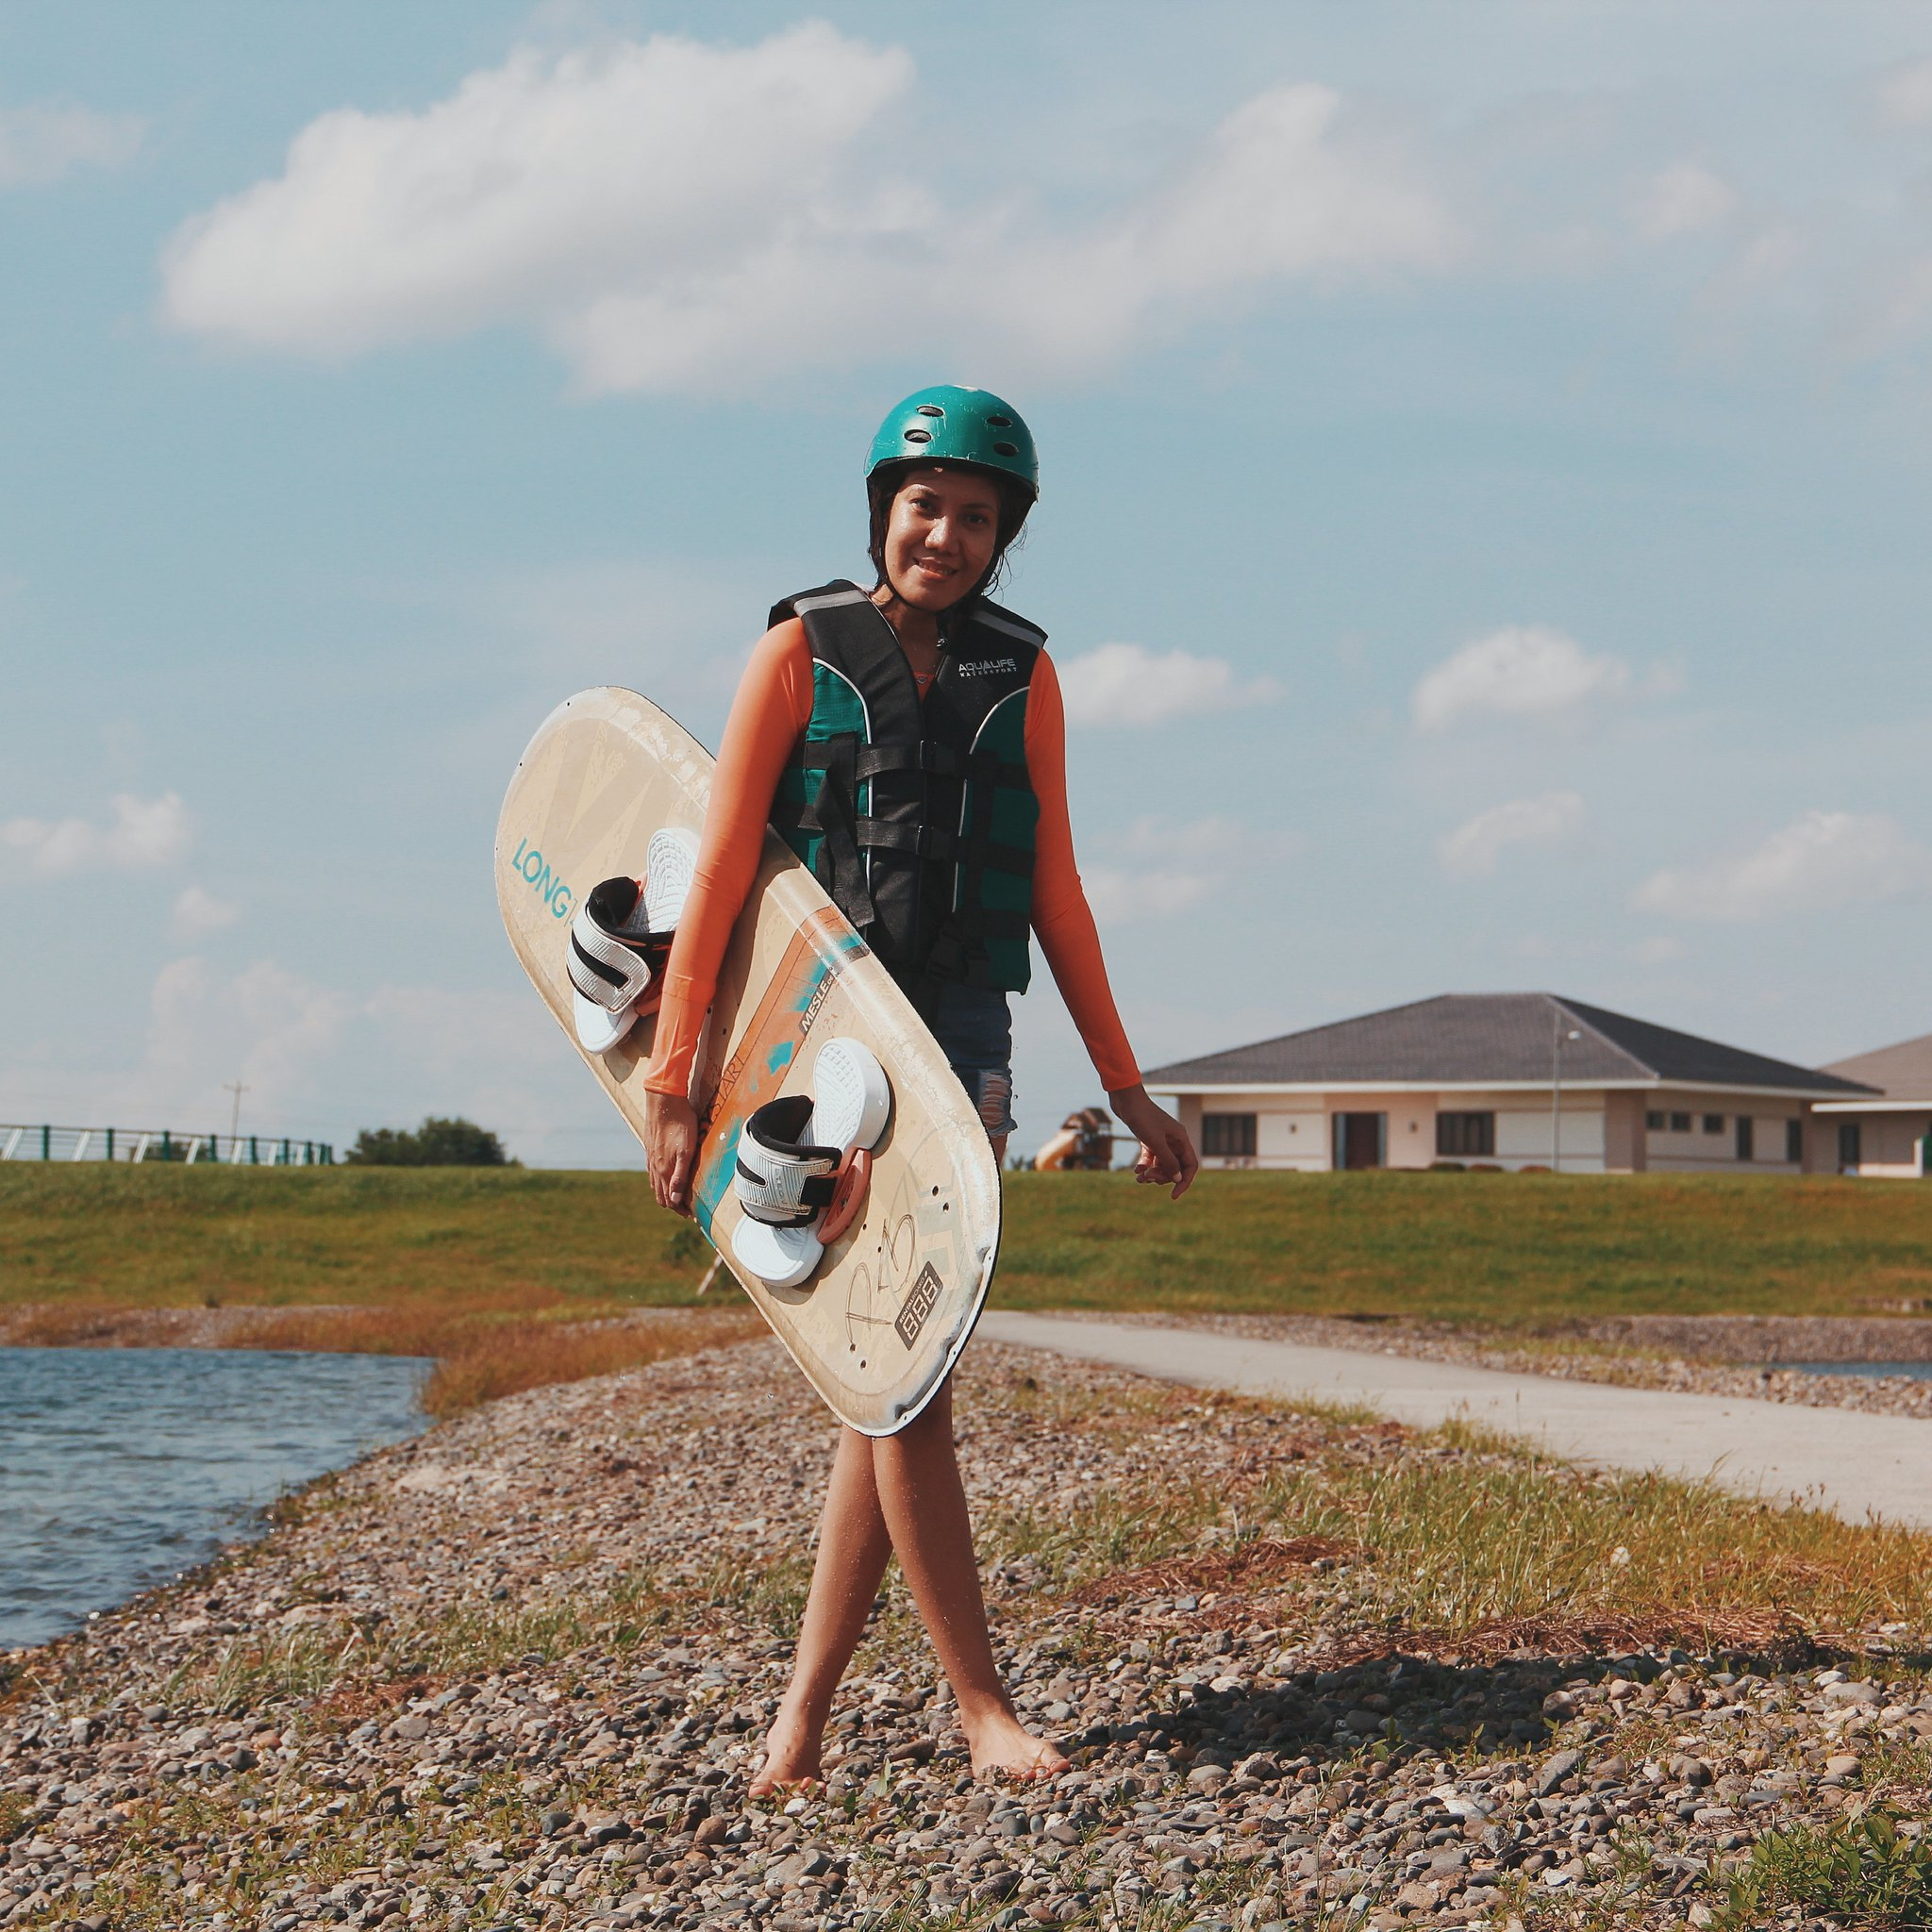 Wakeboarding Experience at Pradera Verde + Don't Make The Same Mistakes I Did